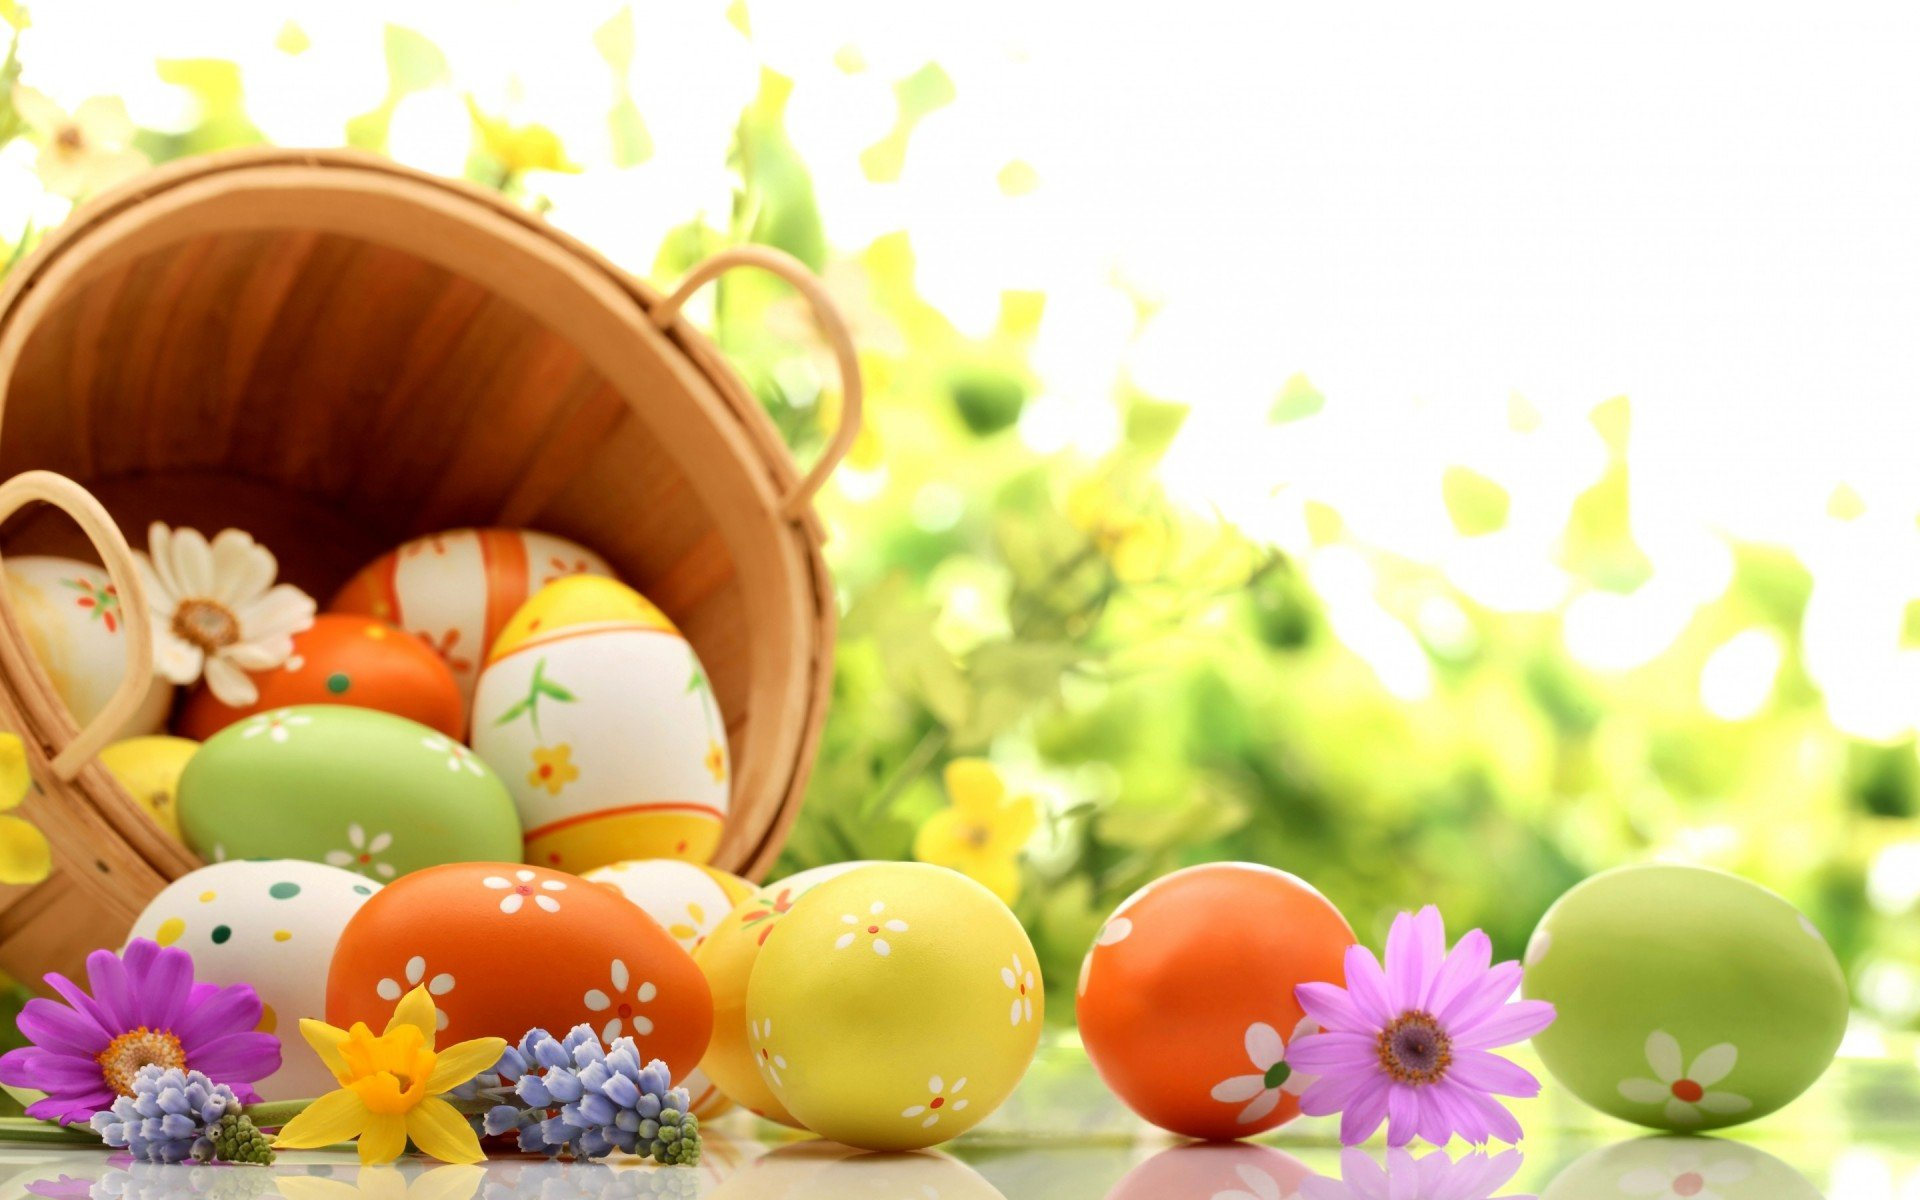 Colored Easter Eggs and Tiny Flowers HD Wallpaper Background 1920x1200